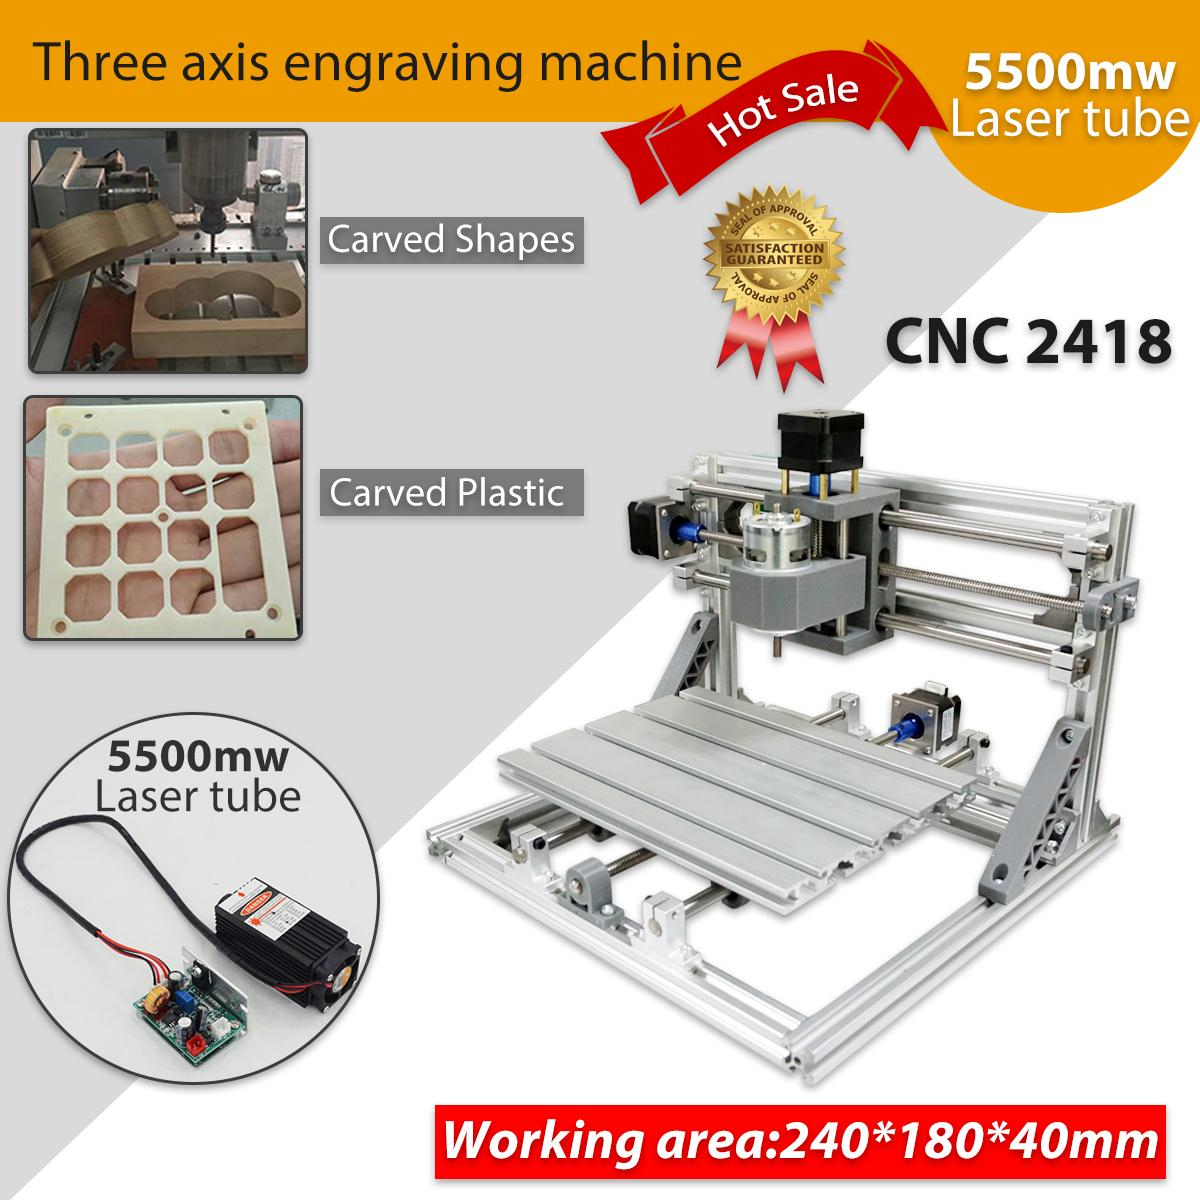 Mini 3 Axis DIY CNC 2418 Router Kit Wood Engraver Milling Machine 5500mW Laser cnc 2030 cnc wood router engraver 4 axis mini cnc milling machine with parallel port